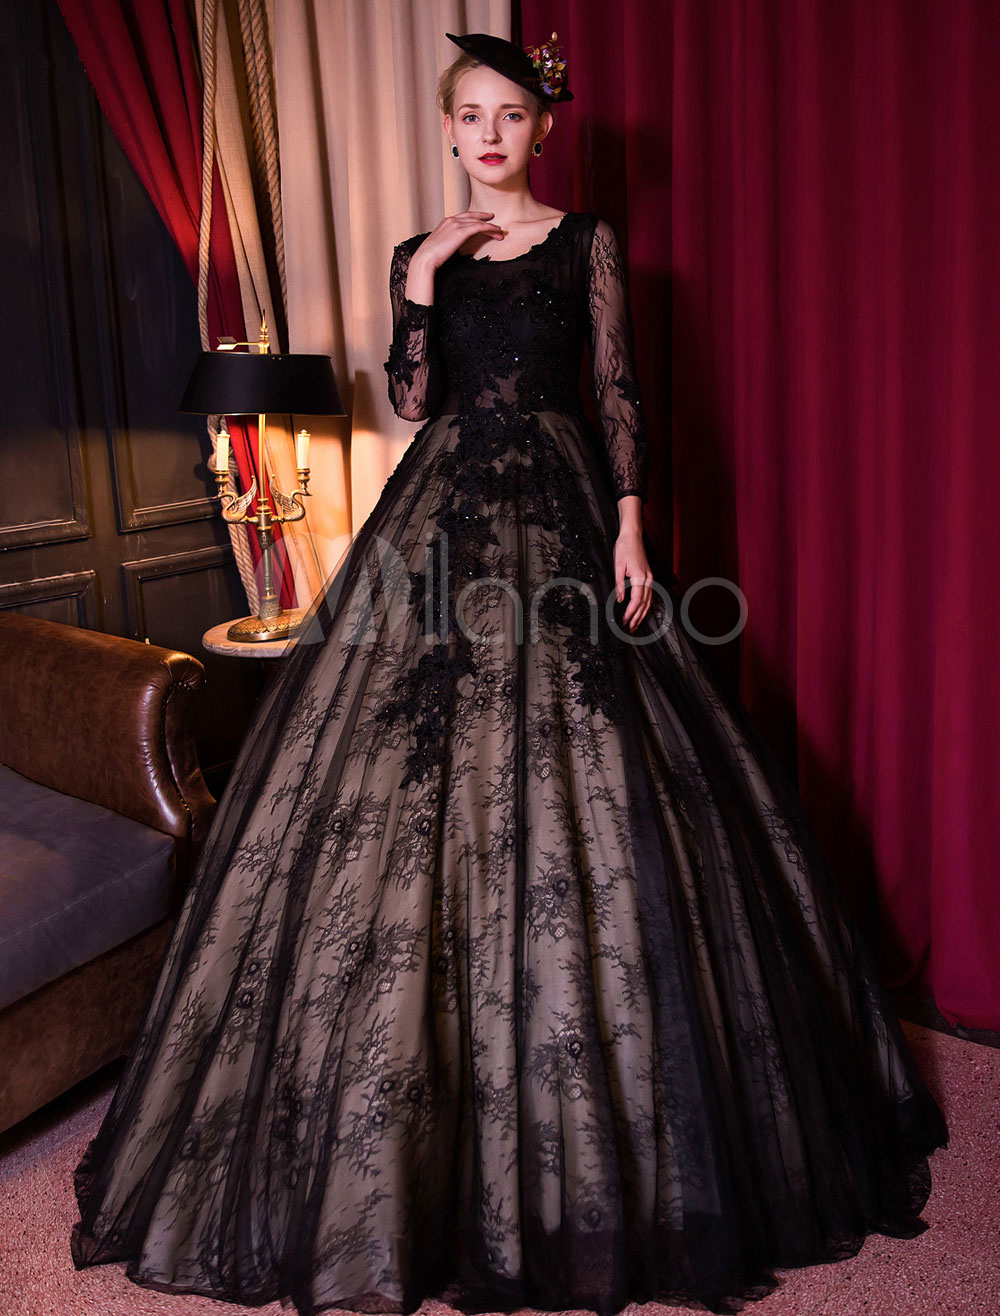 Black Wedding Dress Princess Lace Backless Quinceanera Dress Long Sleeve Illusion Beaded Bridal Gown With Train (Quinceanera Dresses) photo